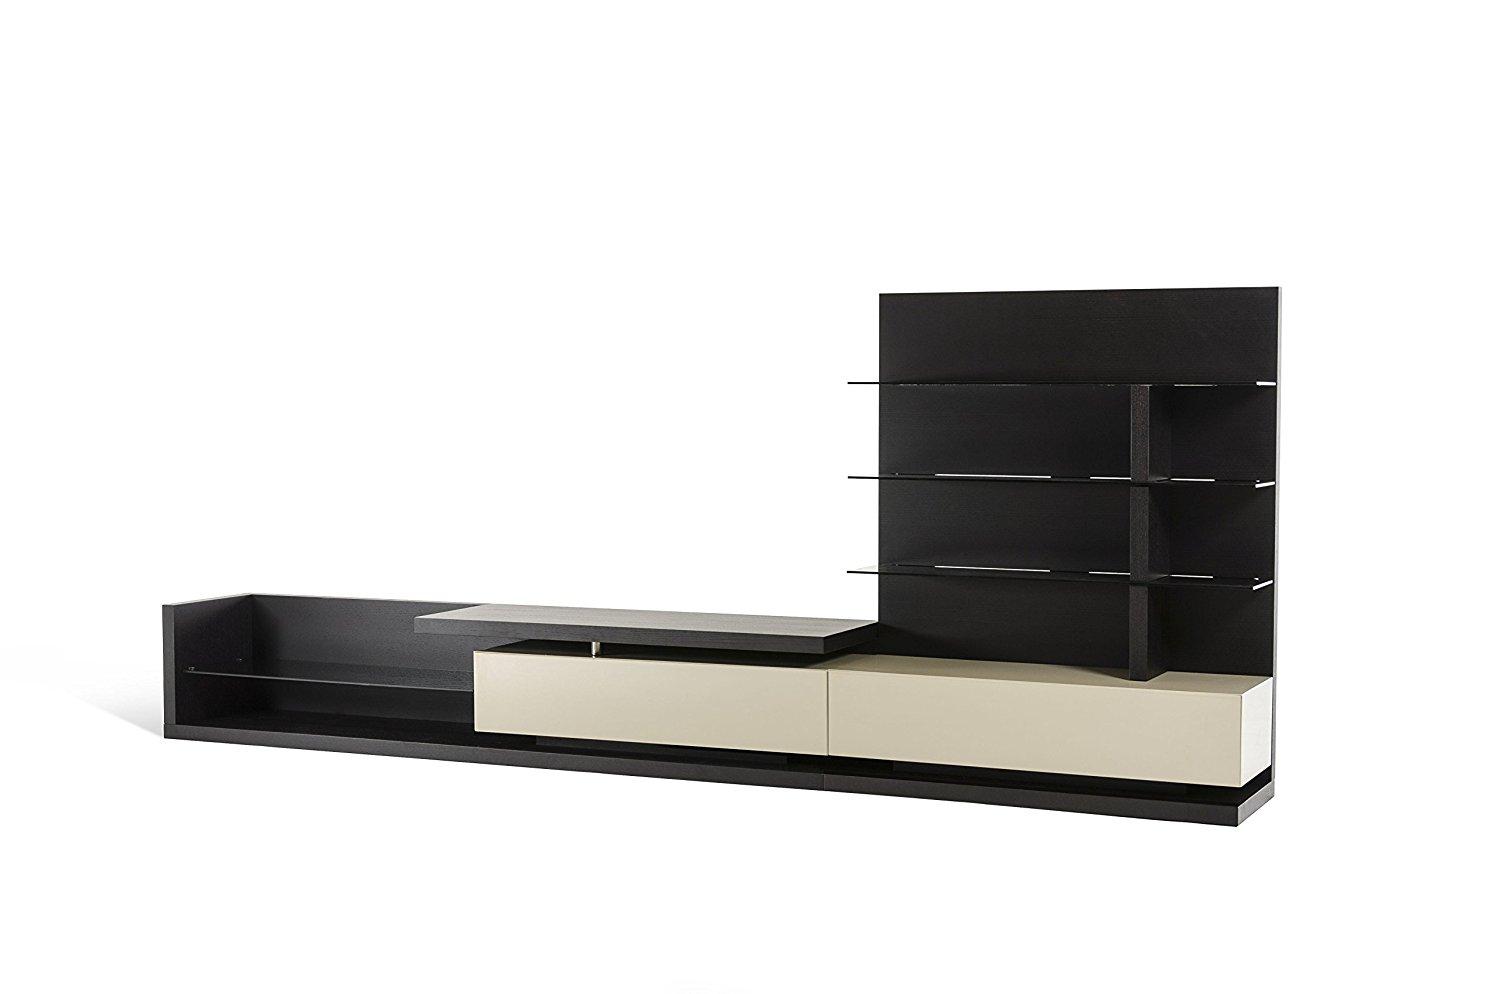 VIG Furniture Modrest Jefferson Collection Modern Veneer High Gloss Finish TV Stand with 4 Grey Glass Shelves and 2 Drawers With Soft-Close Mechanisms, Wenge & Beige